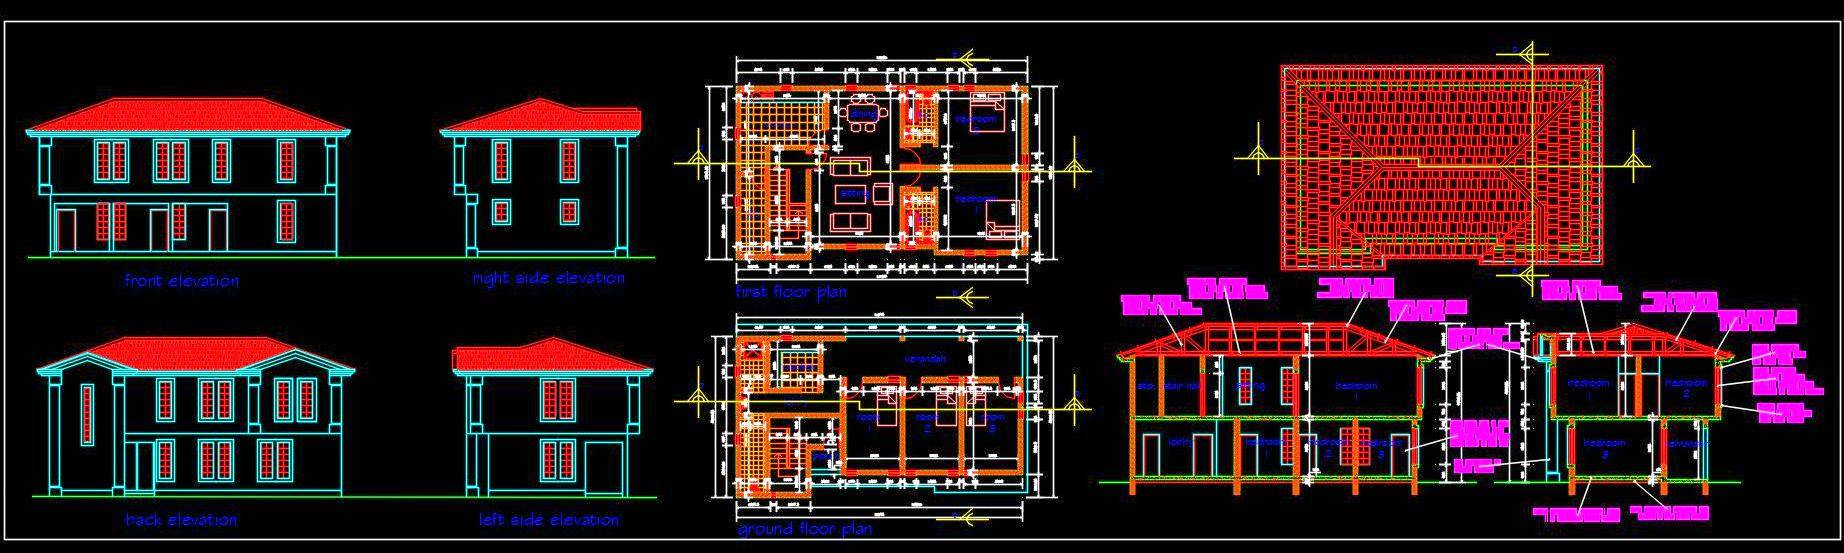 Timber Truss Roof Duplex House Free Dwg File Download Autocad Dwg Plan N Design